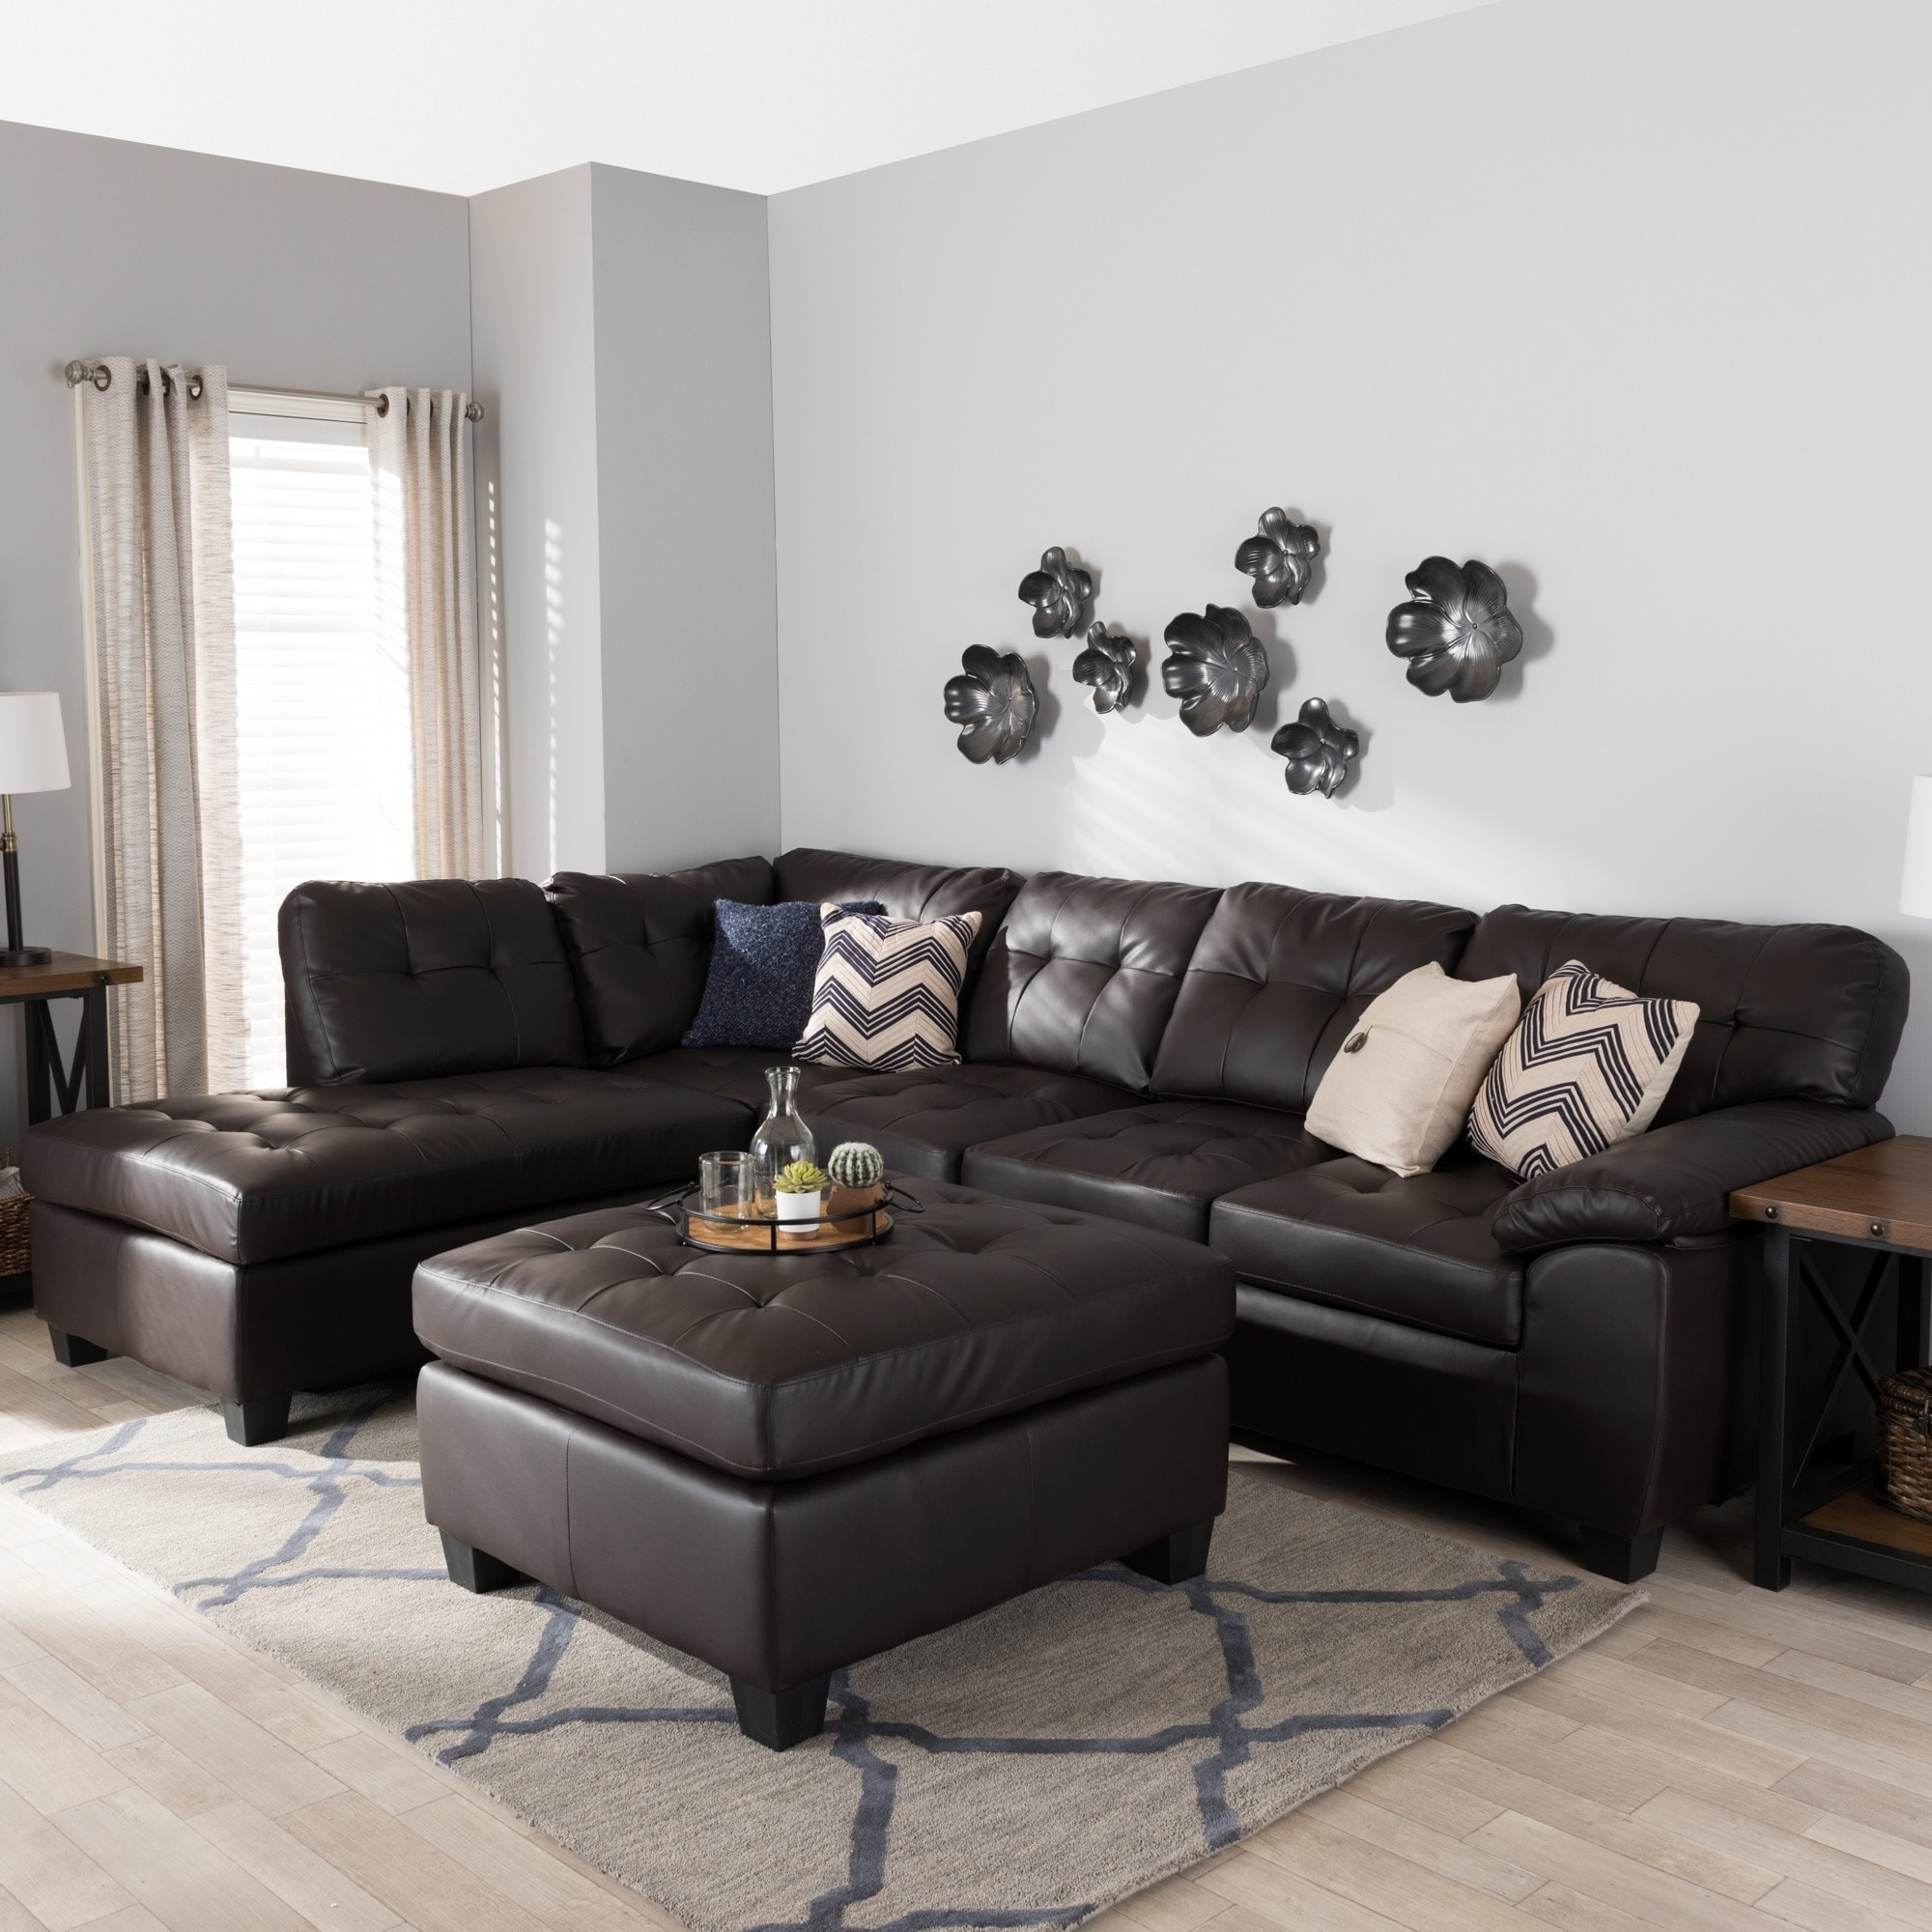 Best And Newest Baxton Studio 'mario' Brown Leather Sectional Sofa With Ottoman Inside Leather Sectionals With Ottoman (View 12 of 20)